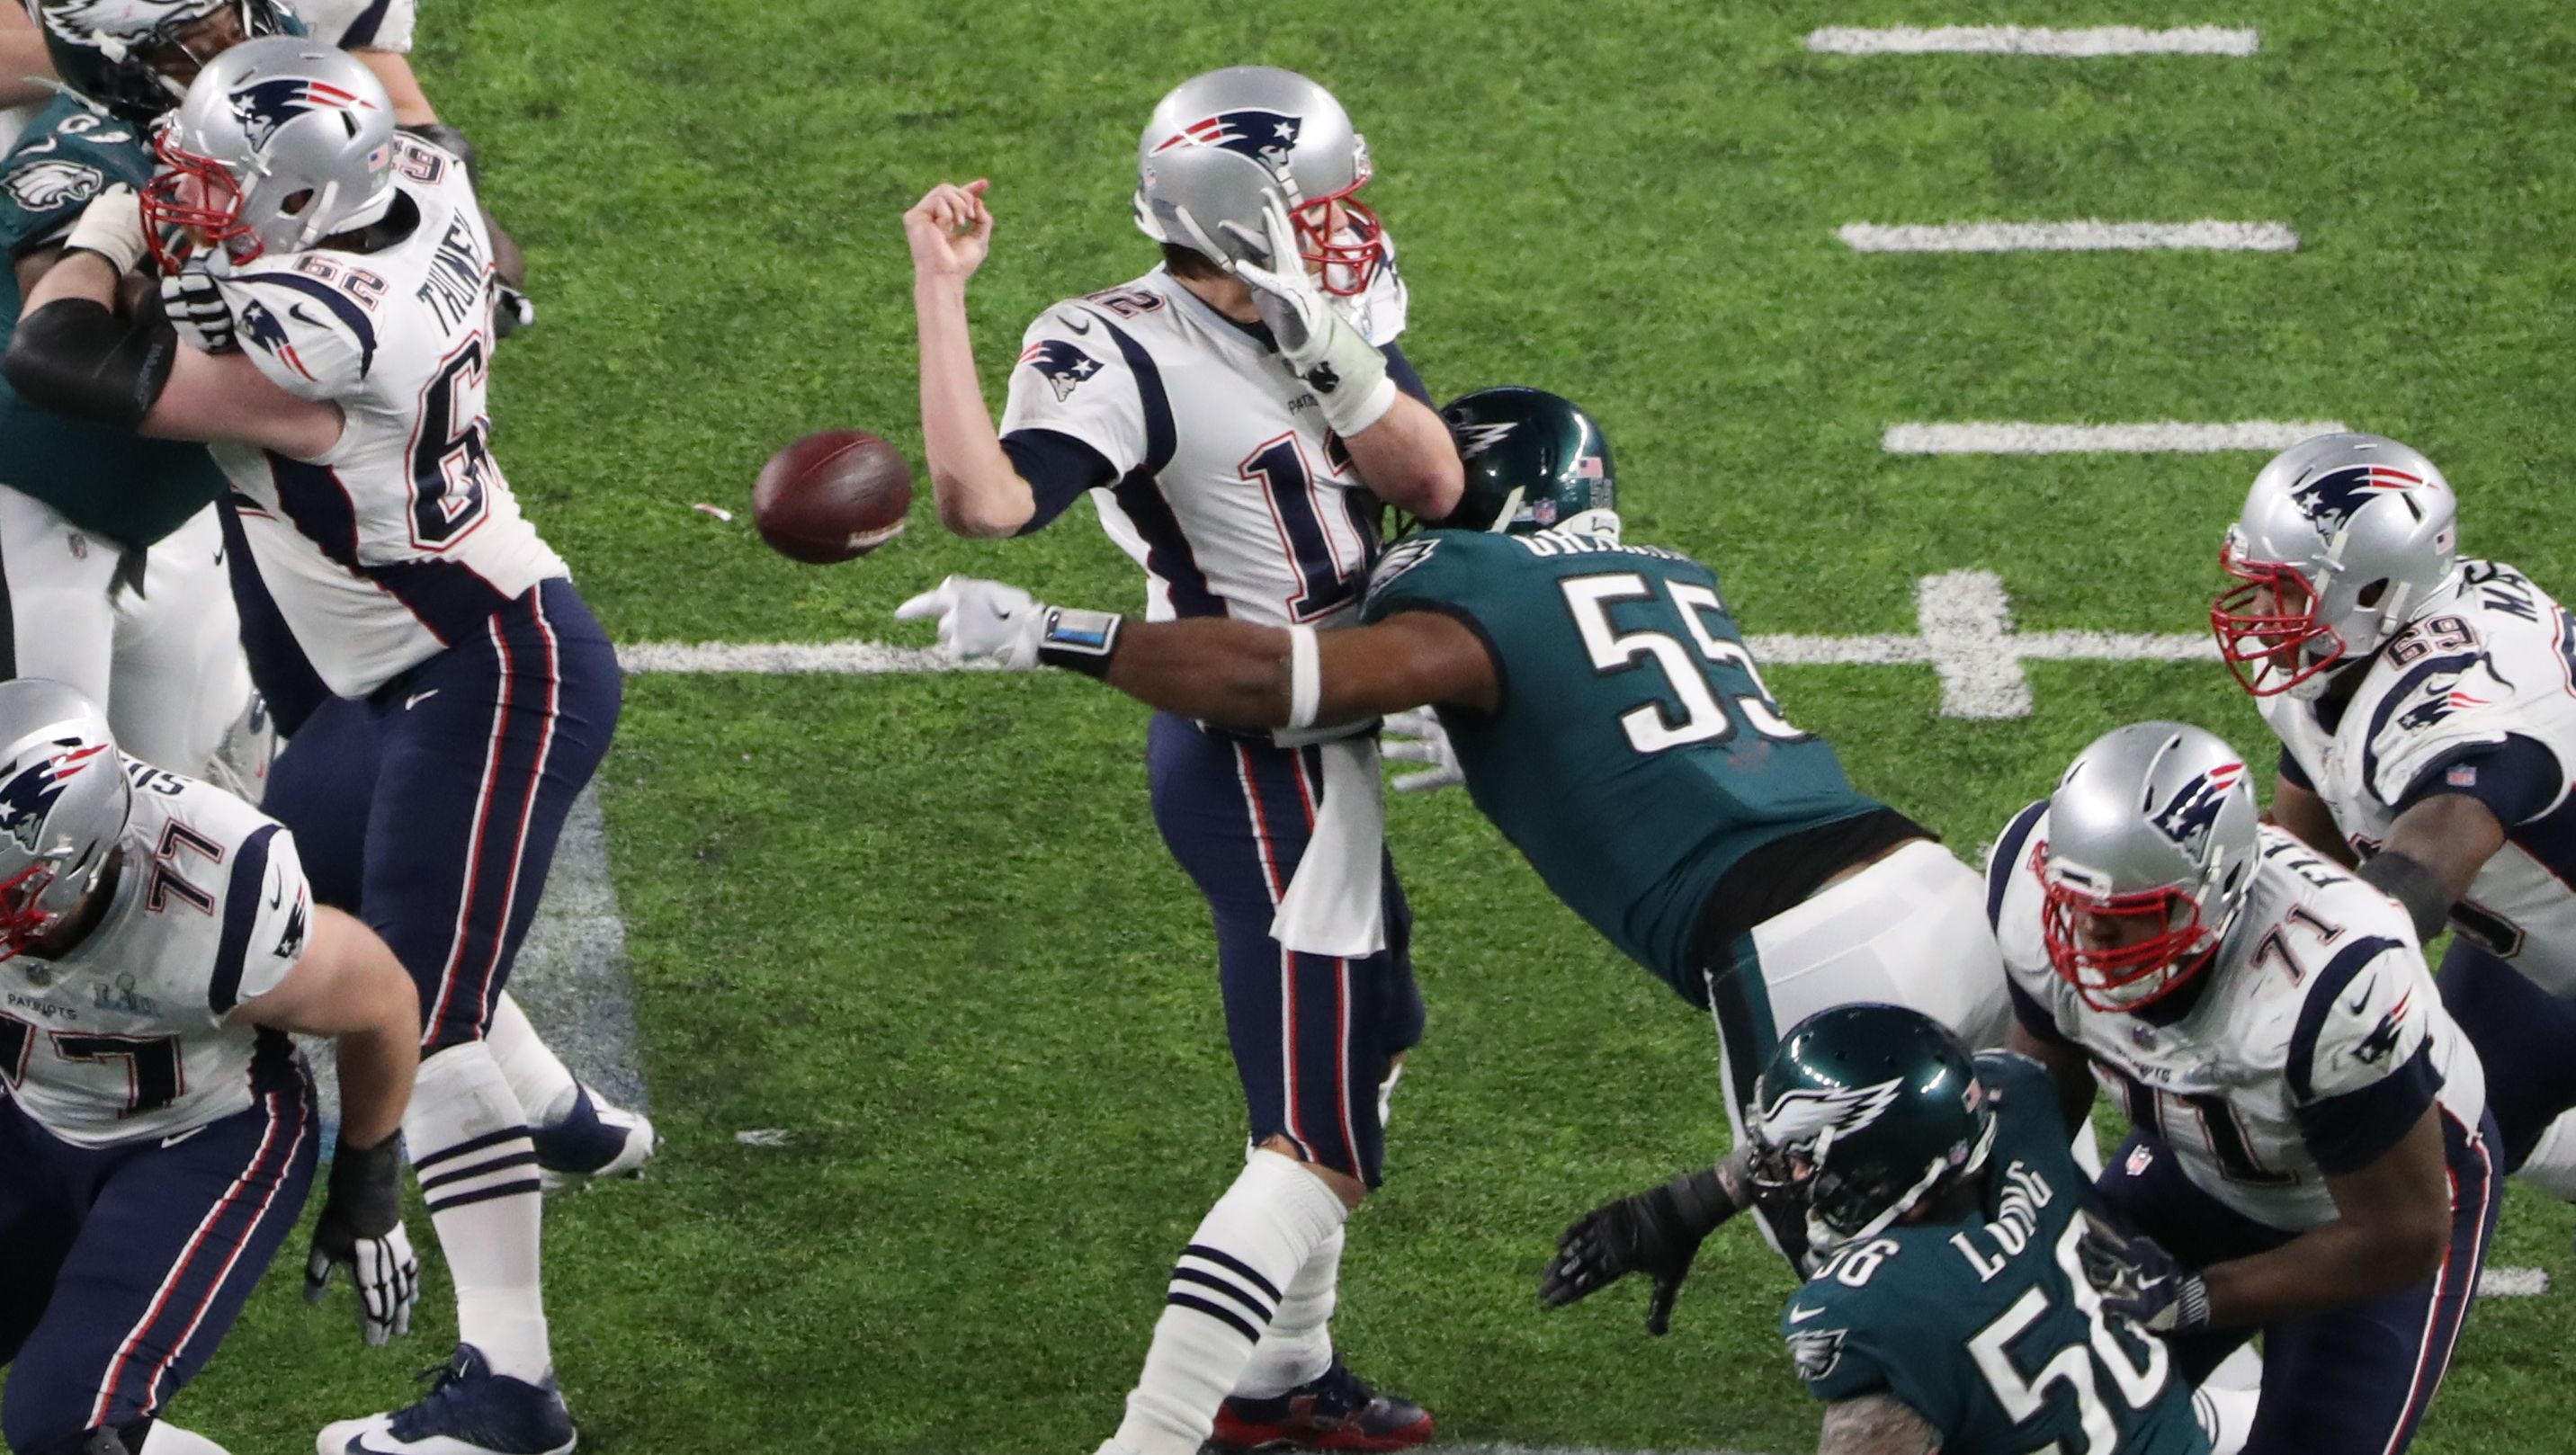 In Honor Of Tom Brady's Birthday Yesterday. Here Is His Last Super Bowl Lost To The Eagles. Go Birds!